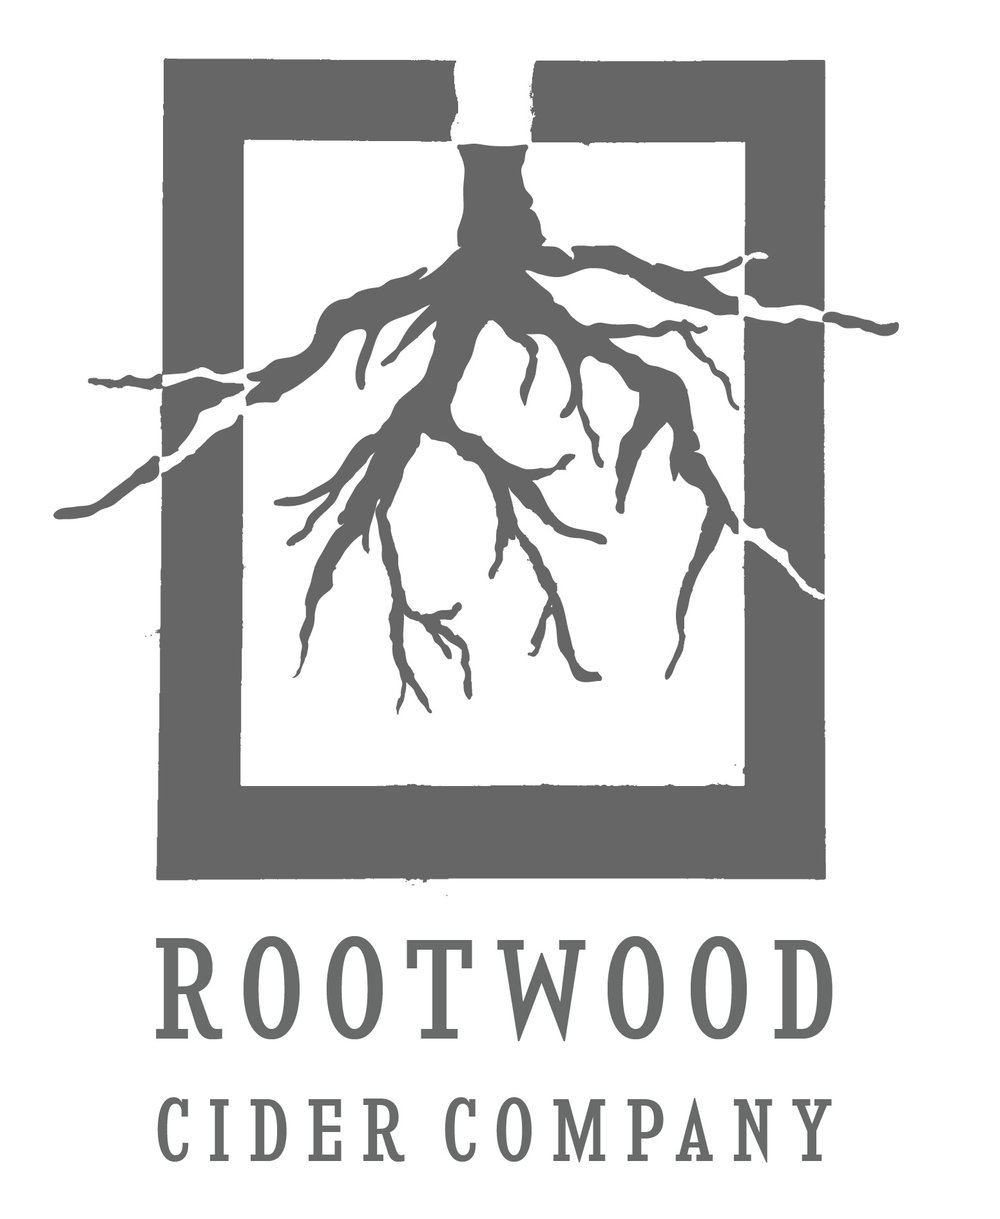 Rootwood Cider Company